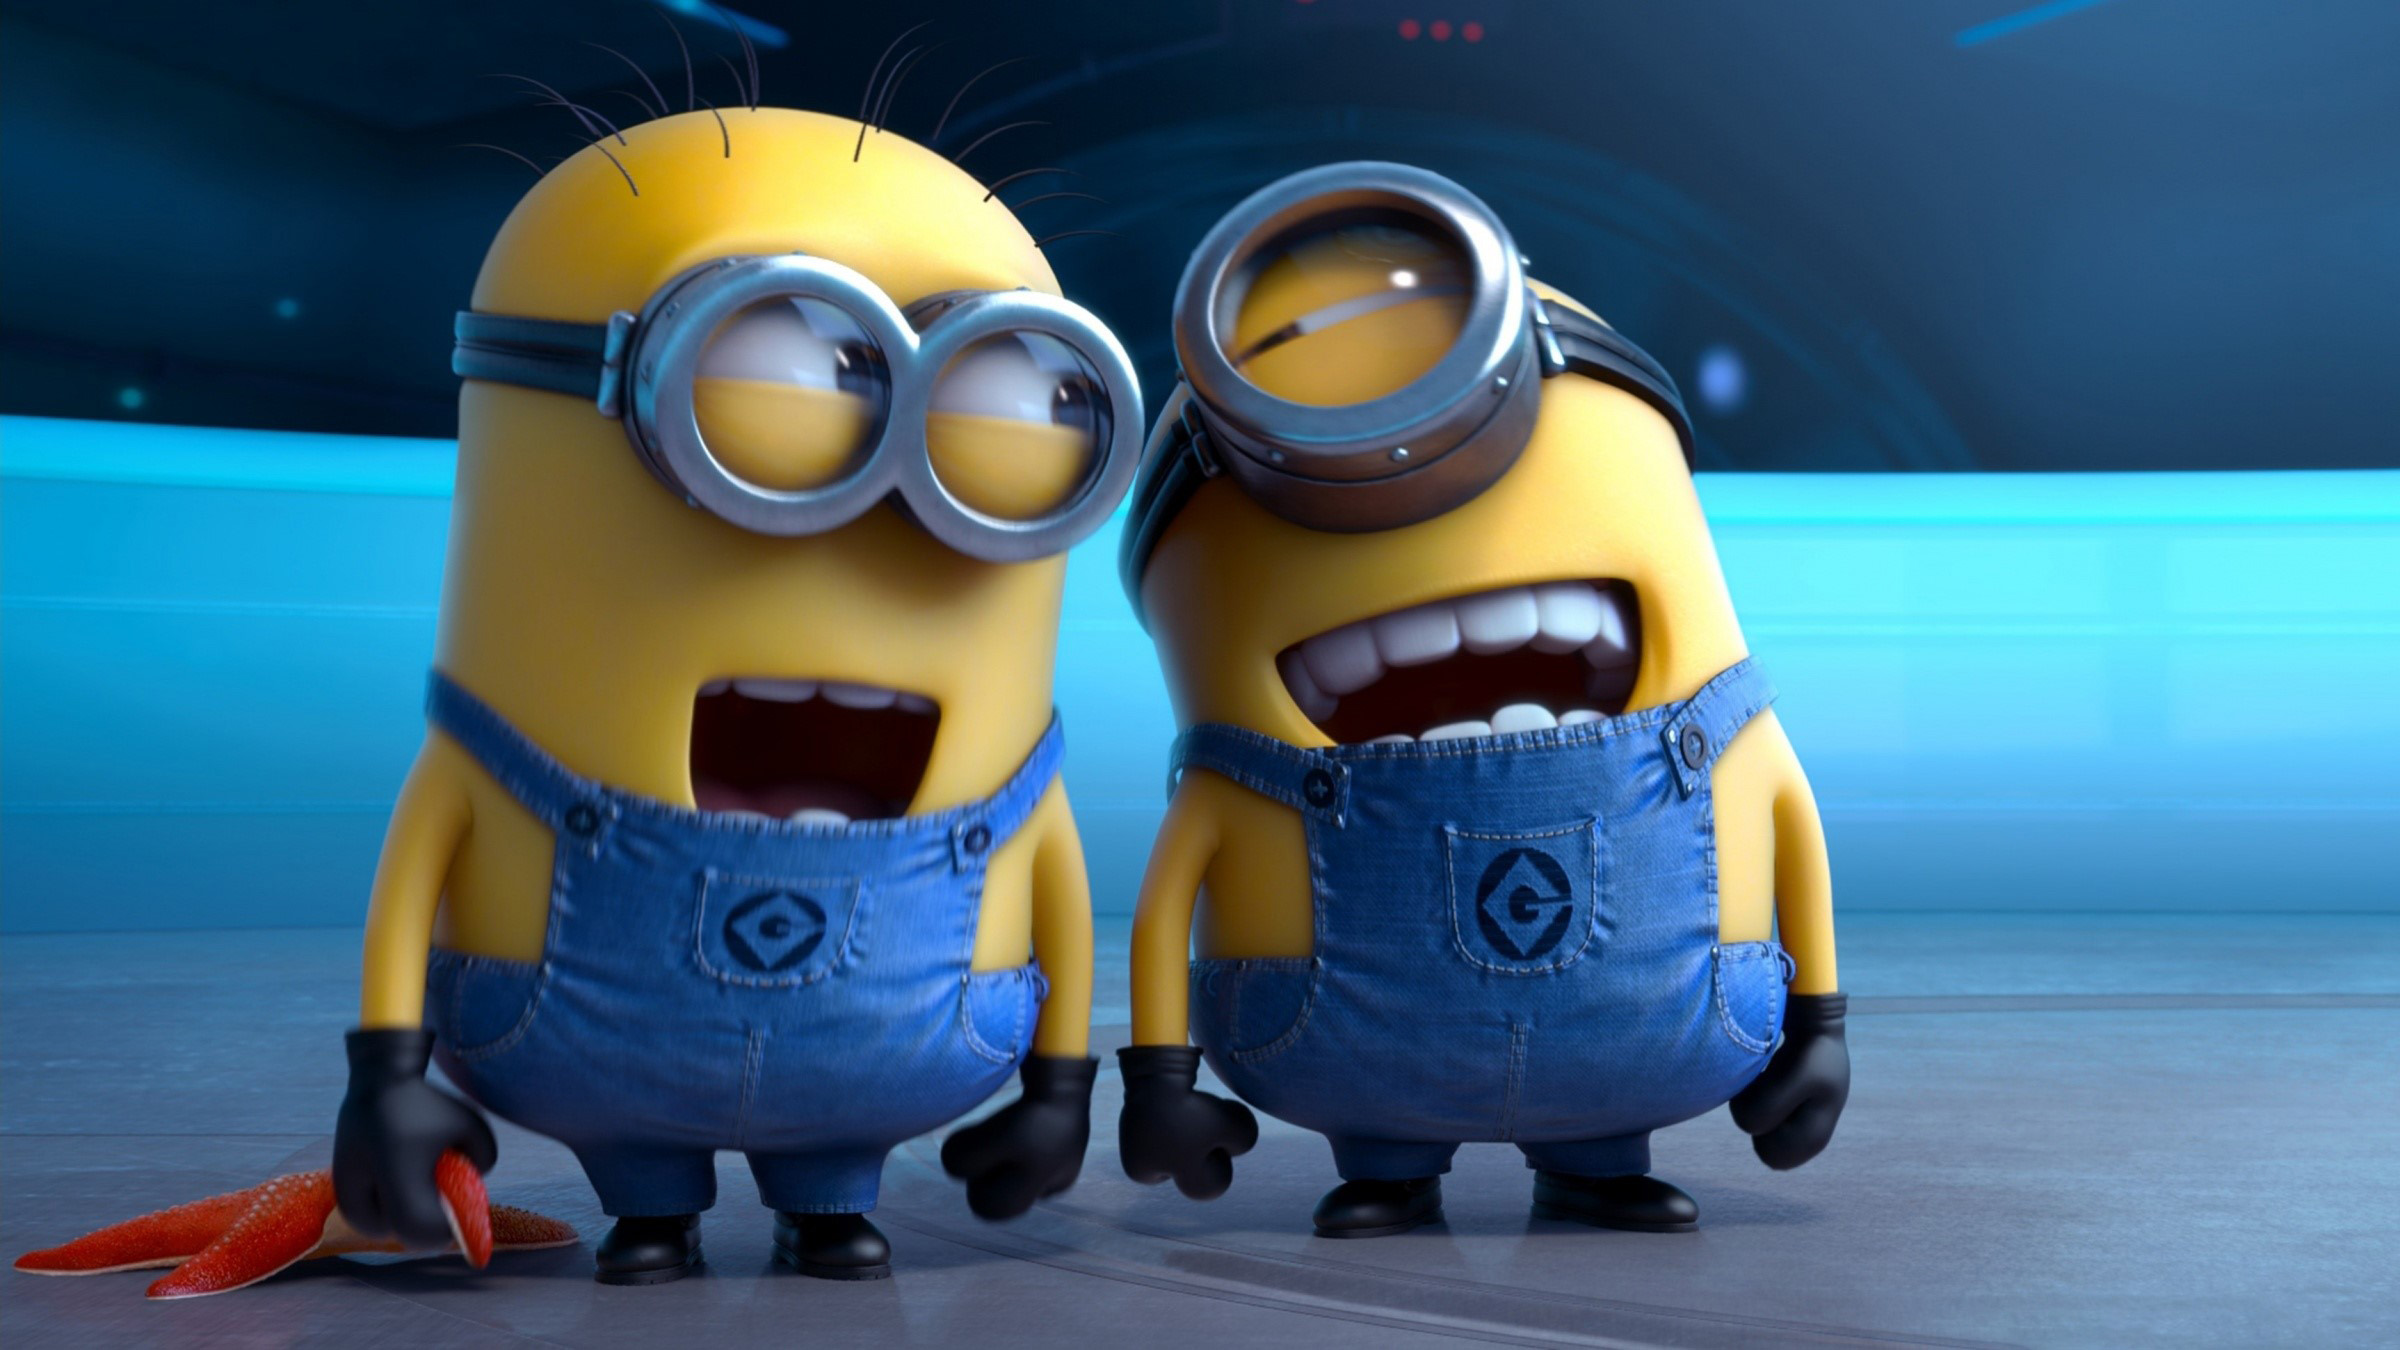 Wallpaper Minions laughing in My favorite villain 2